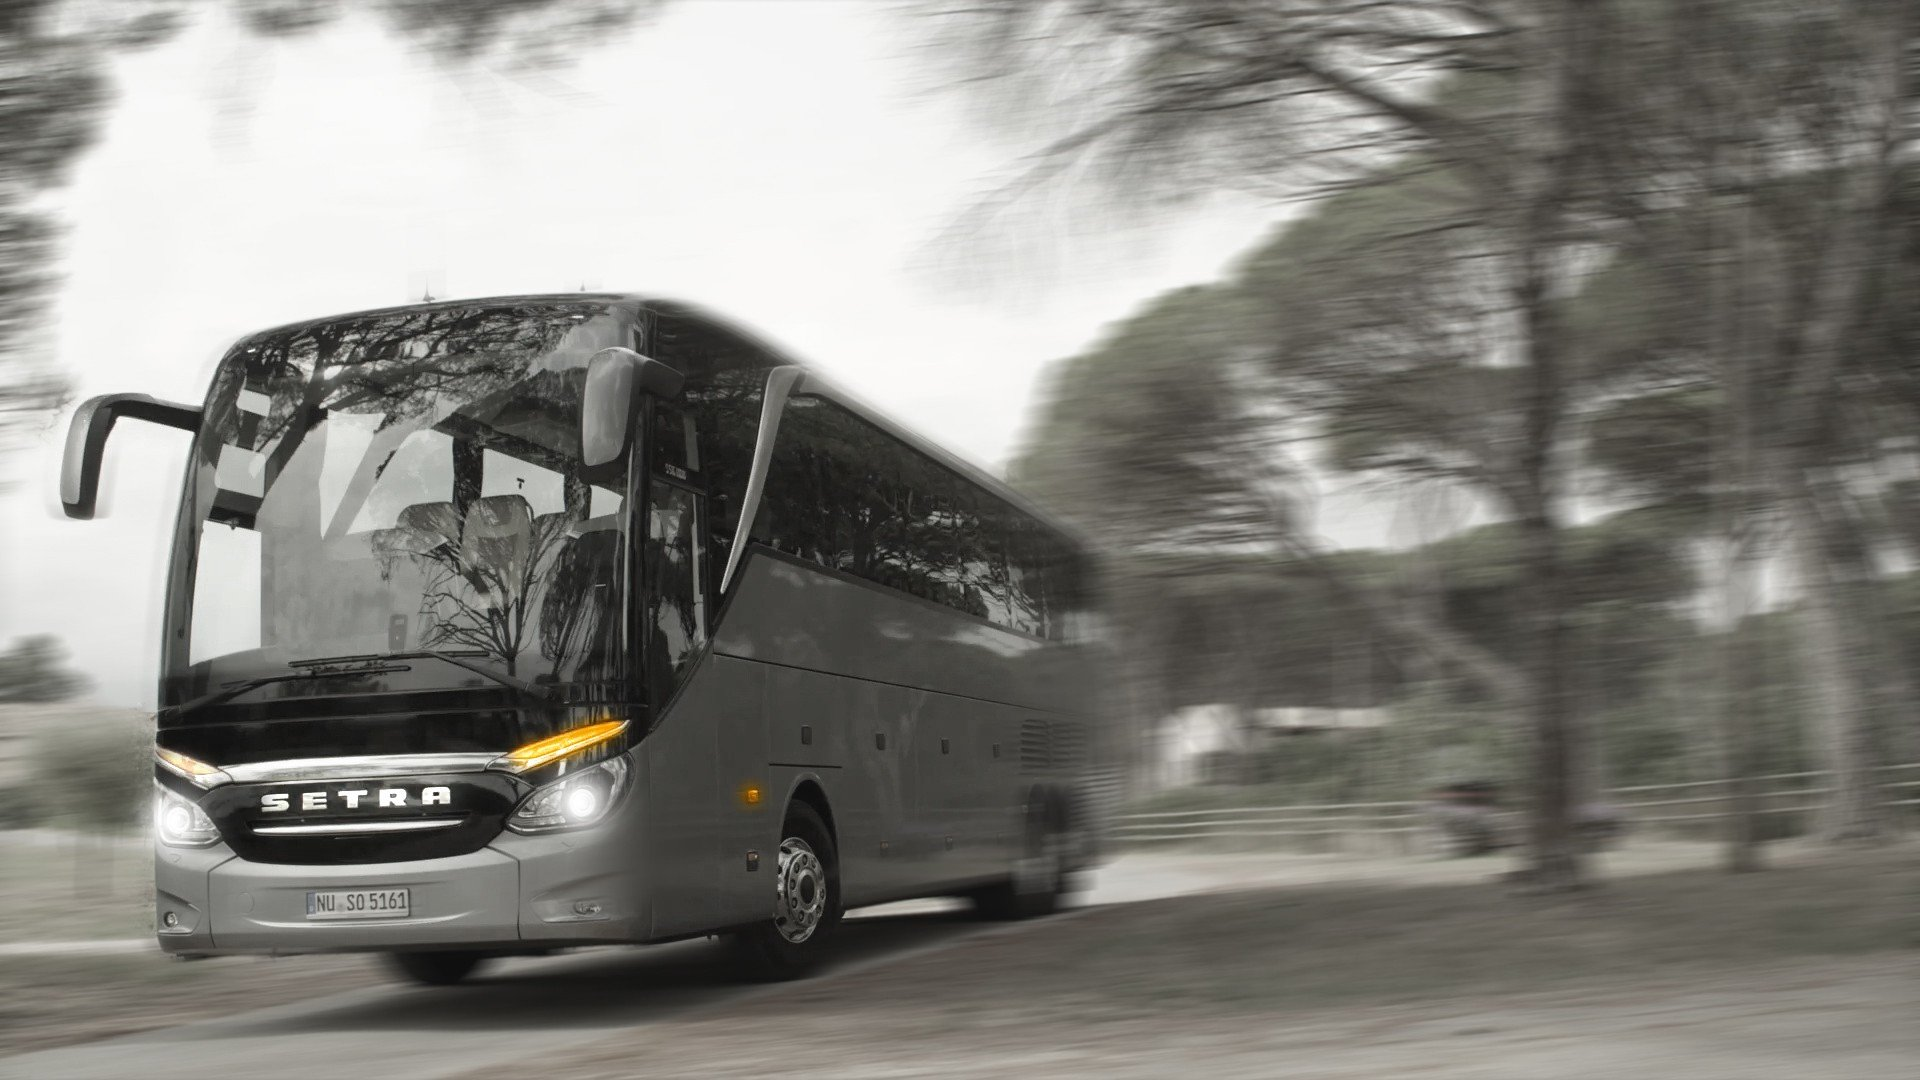 Setra Coach Buses Selective Coloring Hd Wallpapers Desktop And Mobile Images Photos